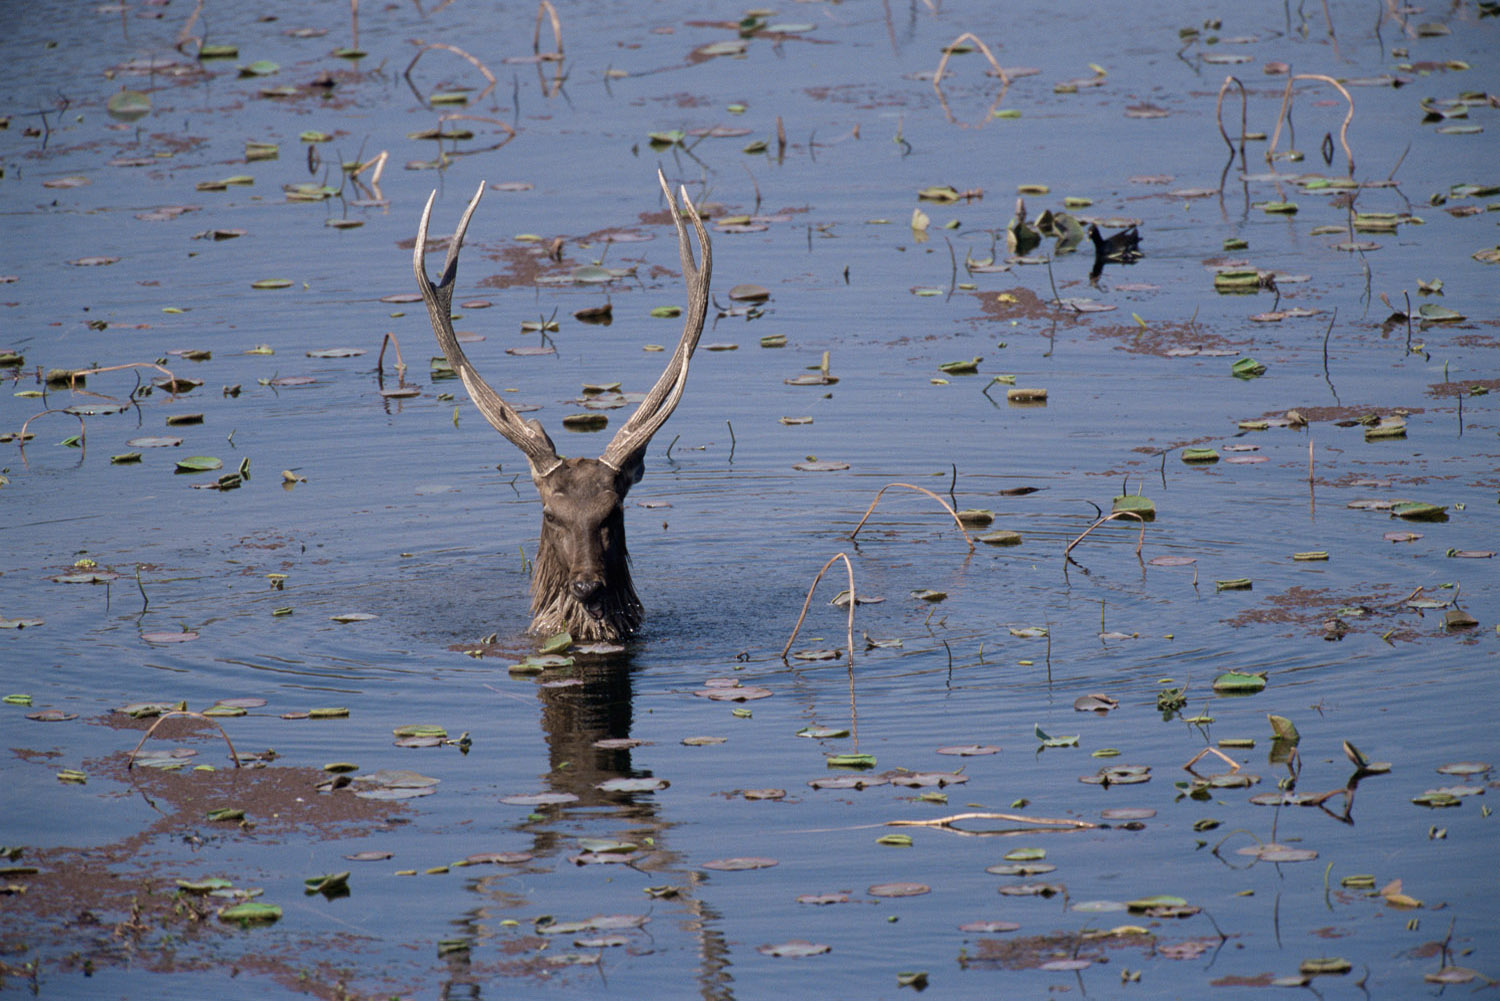 Sambar stag in Lake Ragbagh, Ranthambhore National Park, Rajasthan, India